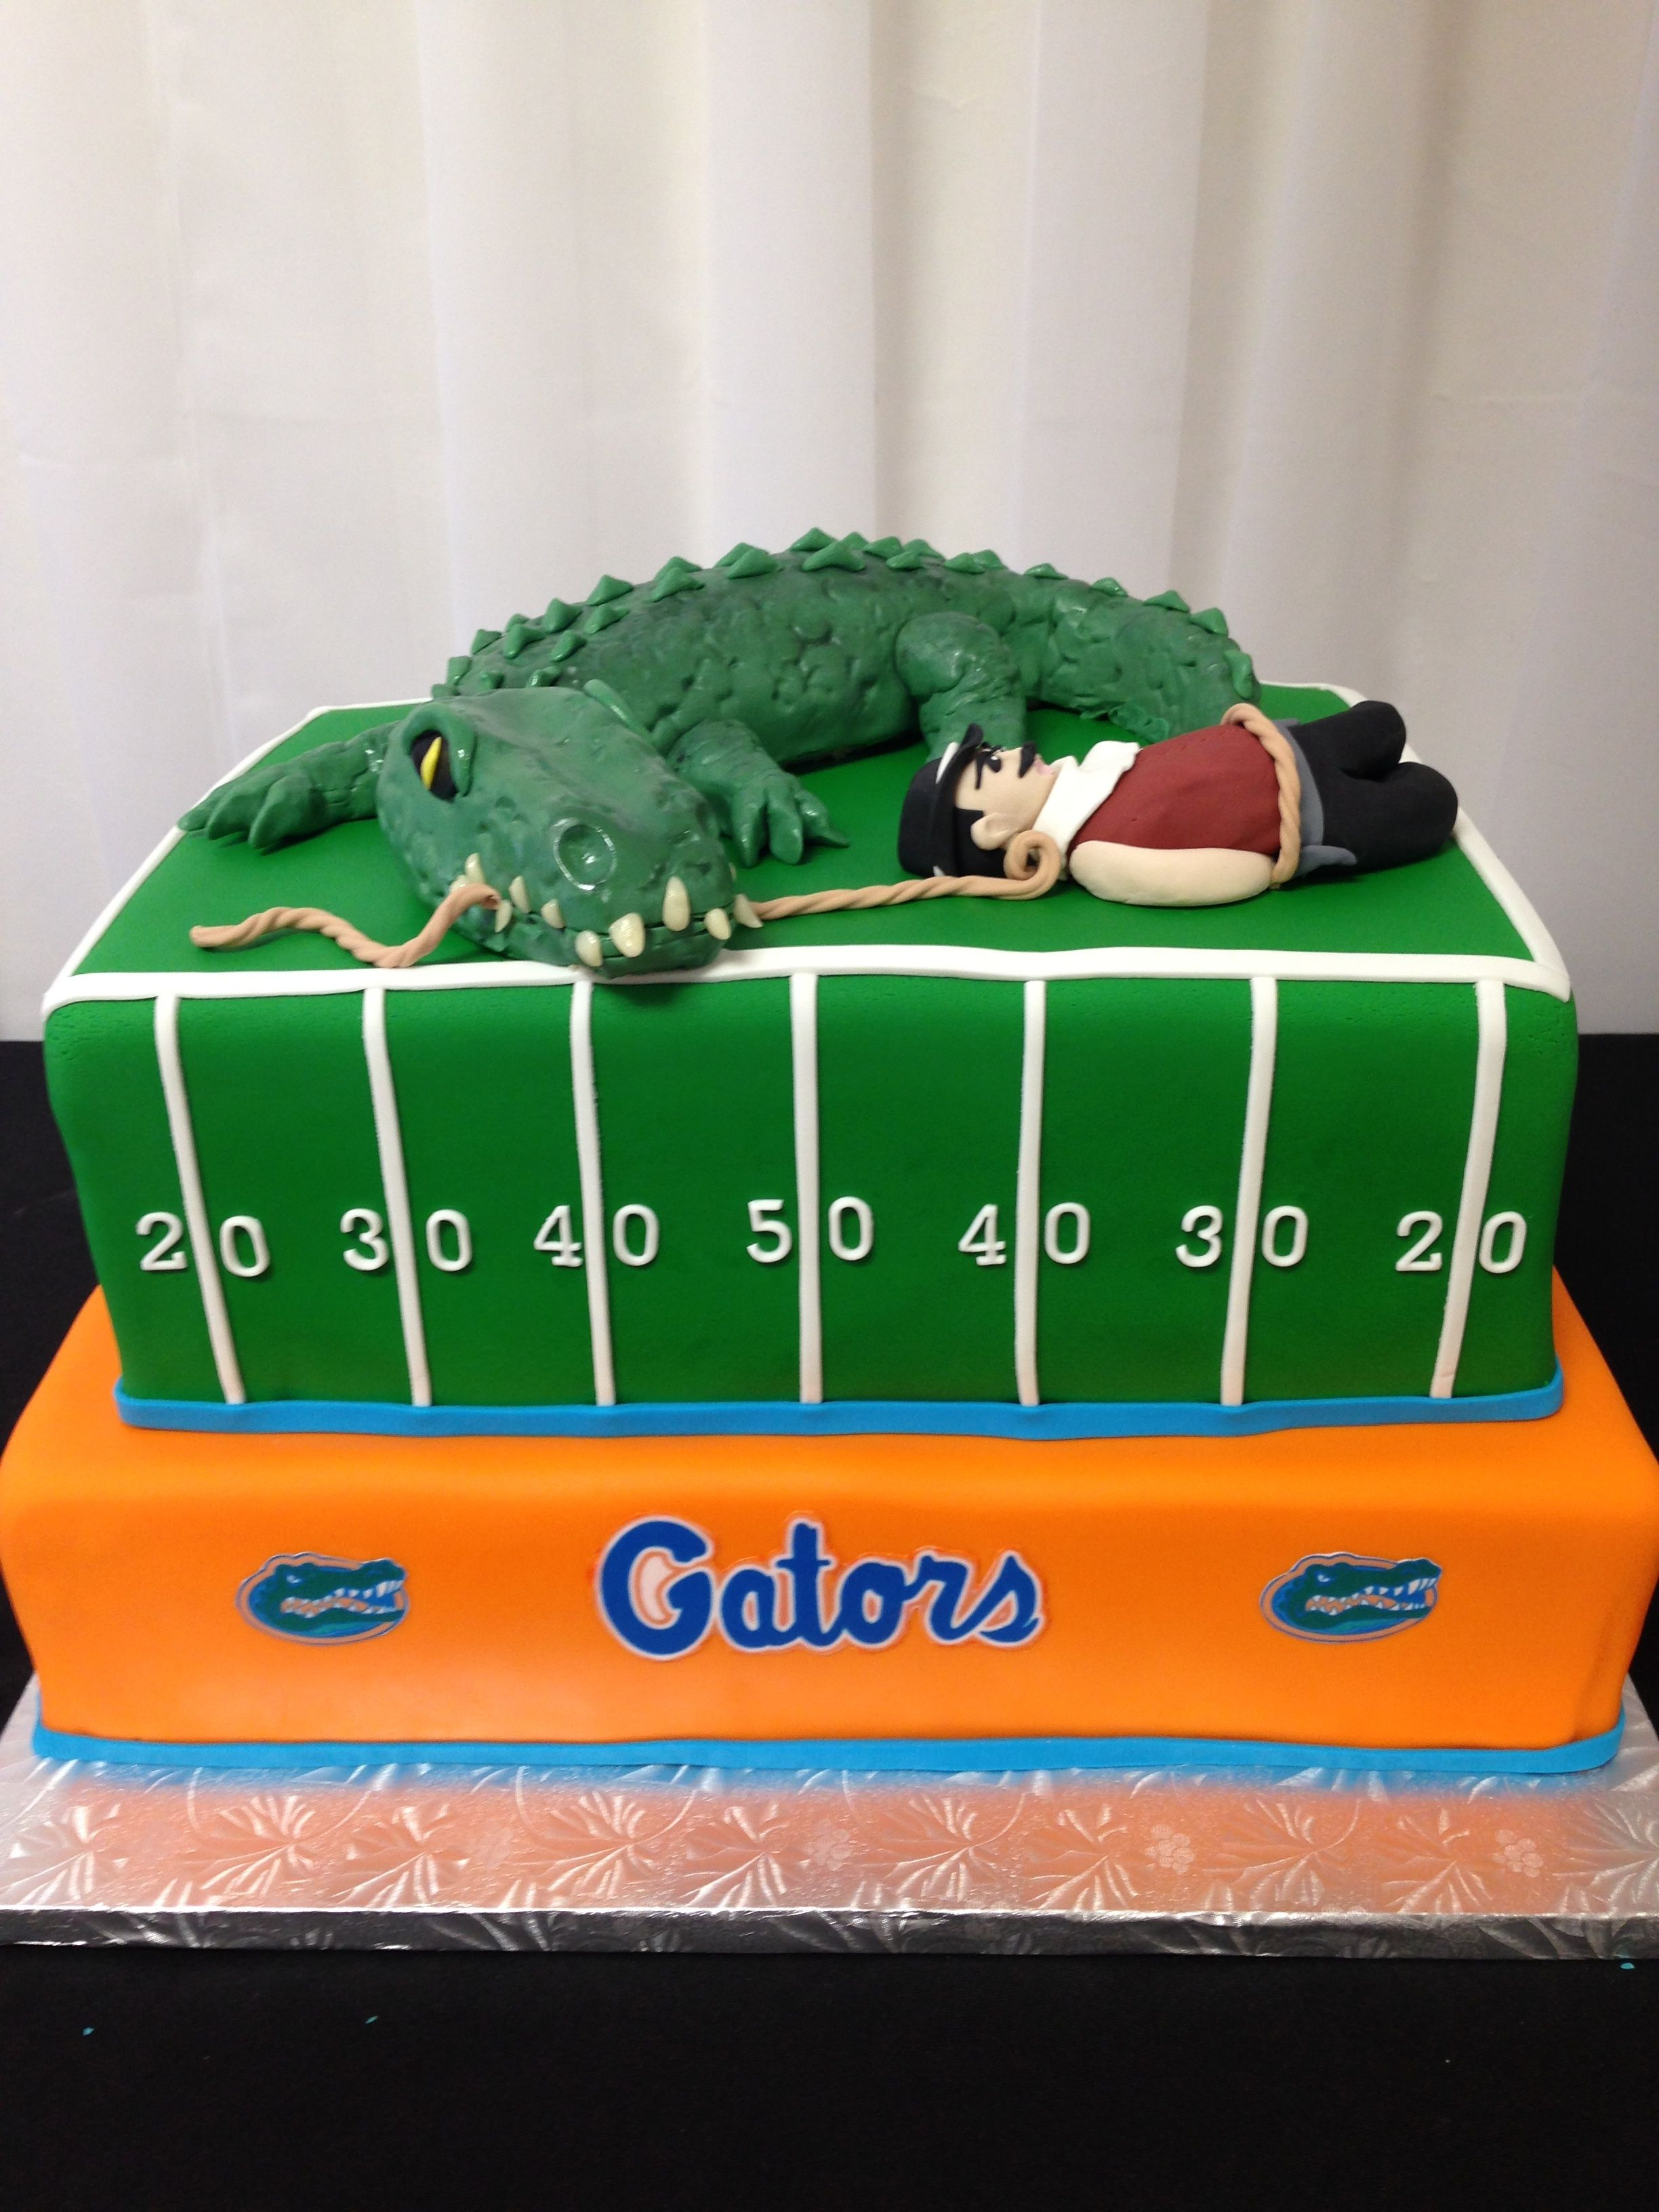 UF Gators Vs New Mexico State Beautiful Wedding Cakes Custom Birthday Cake